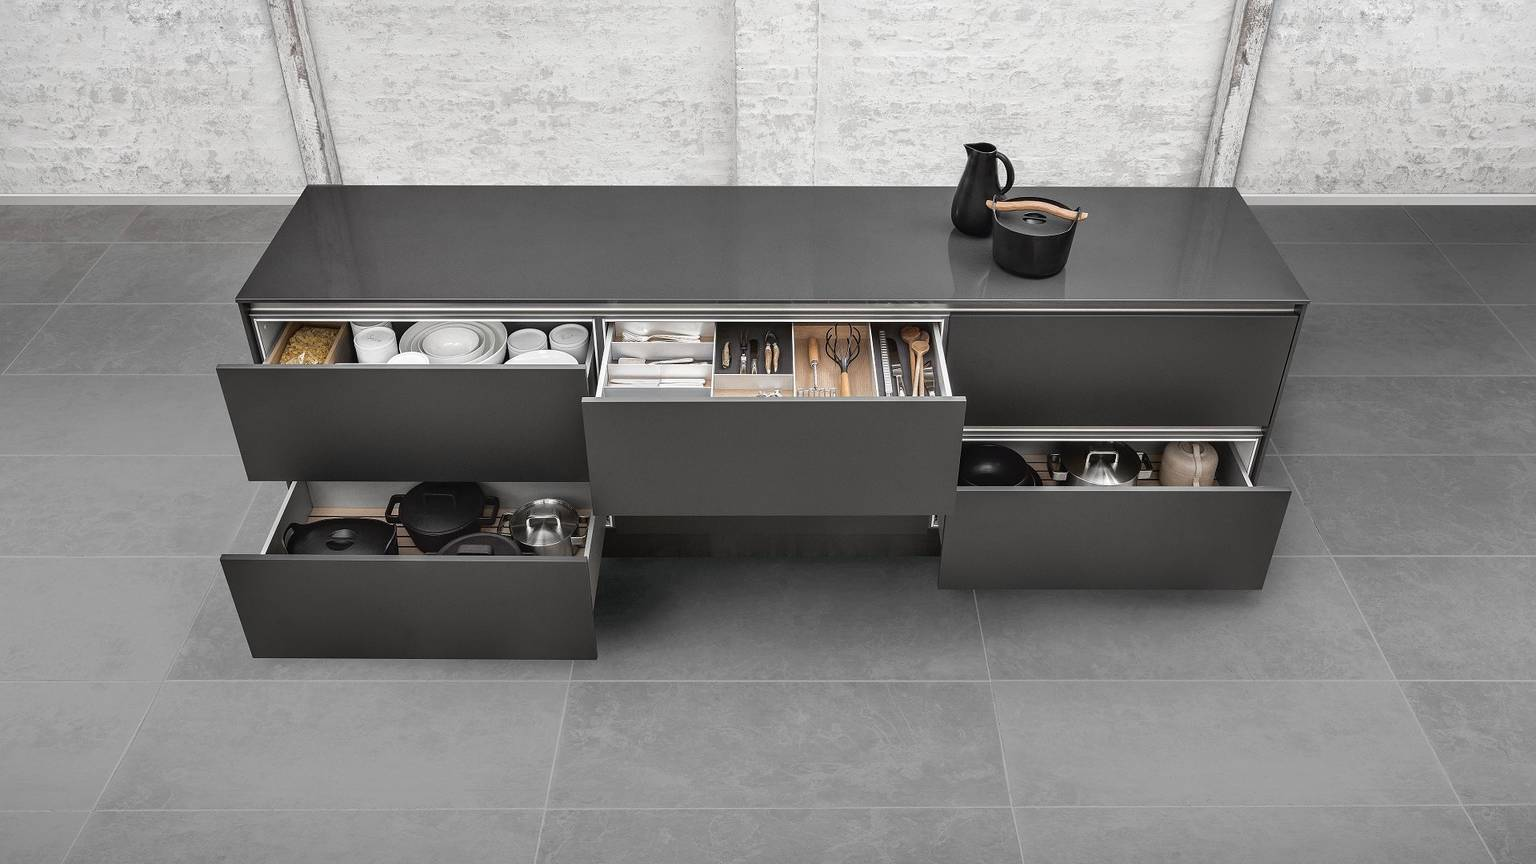 Versatile variations of kitchen accessories are available from SieMatic,